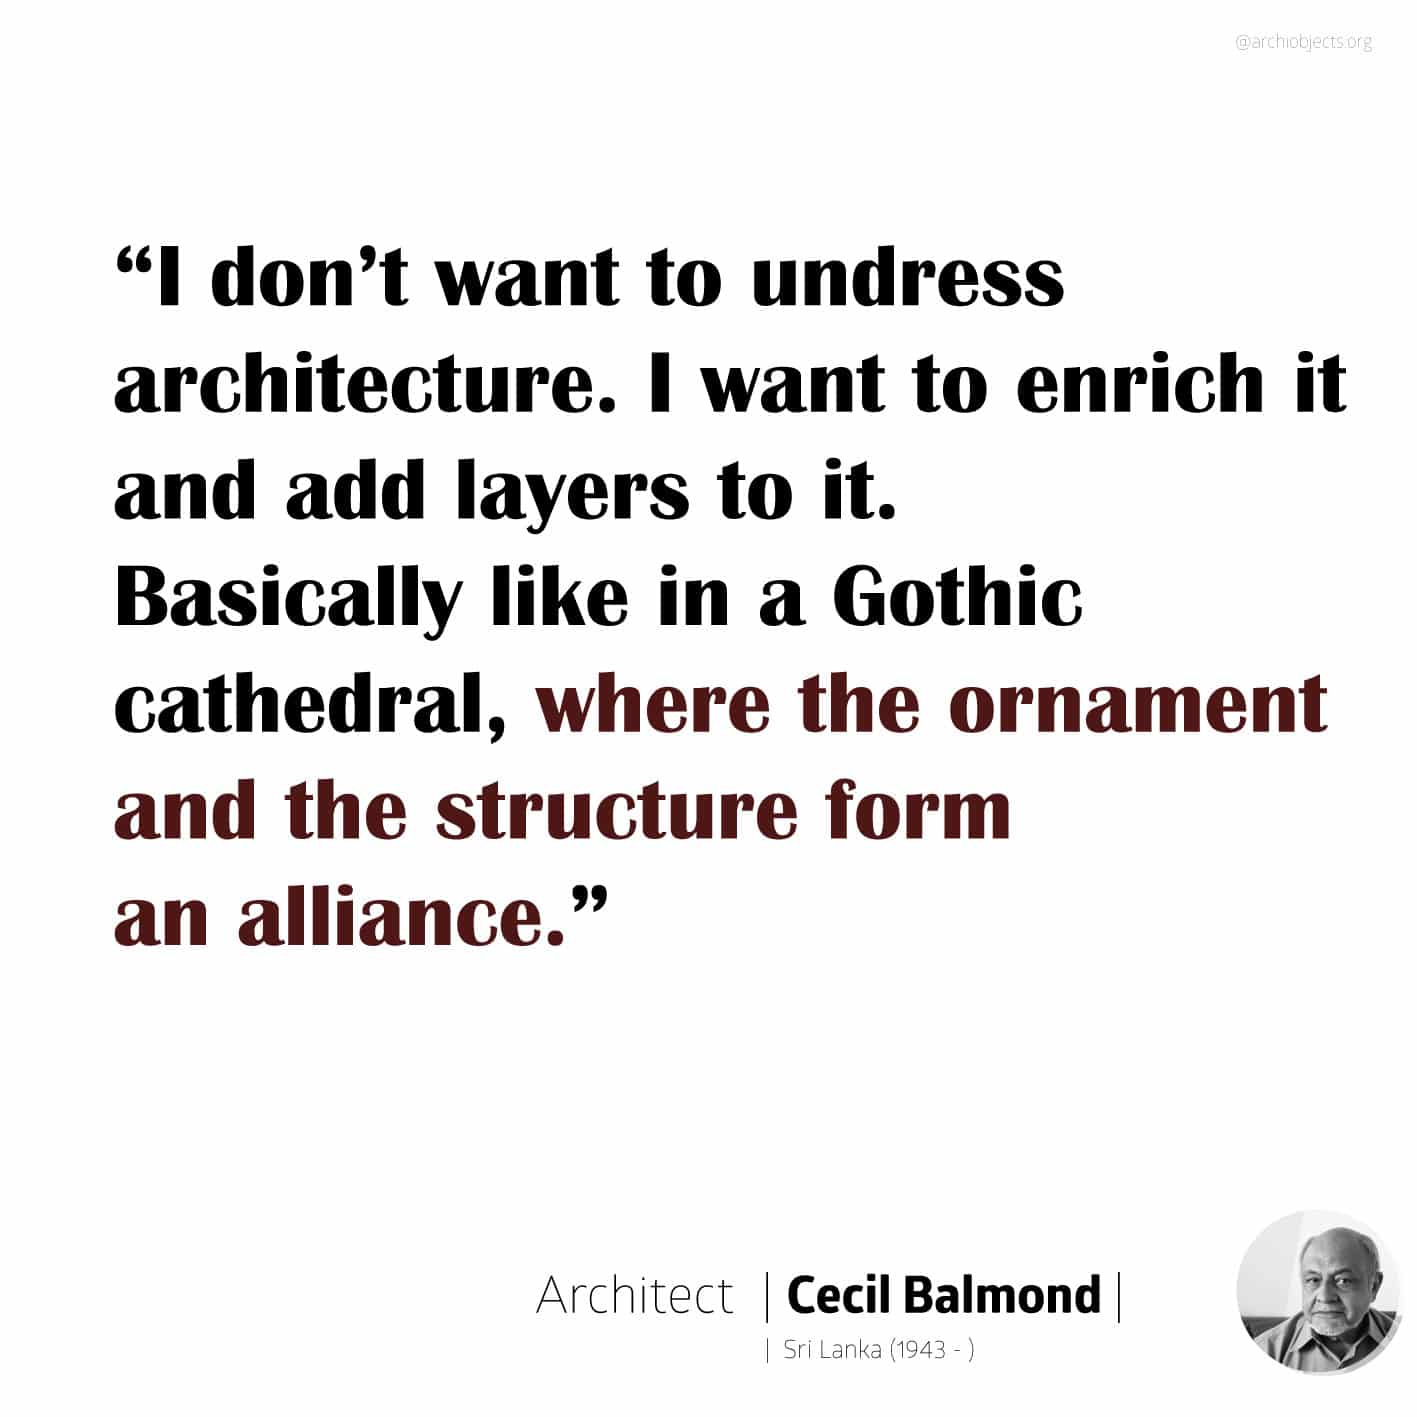 cecil balmond quote Architectural Quotes - Worth spreading Architects' voice